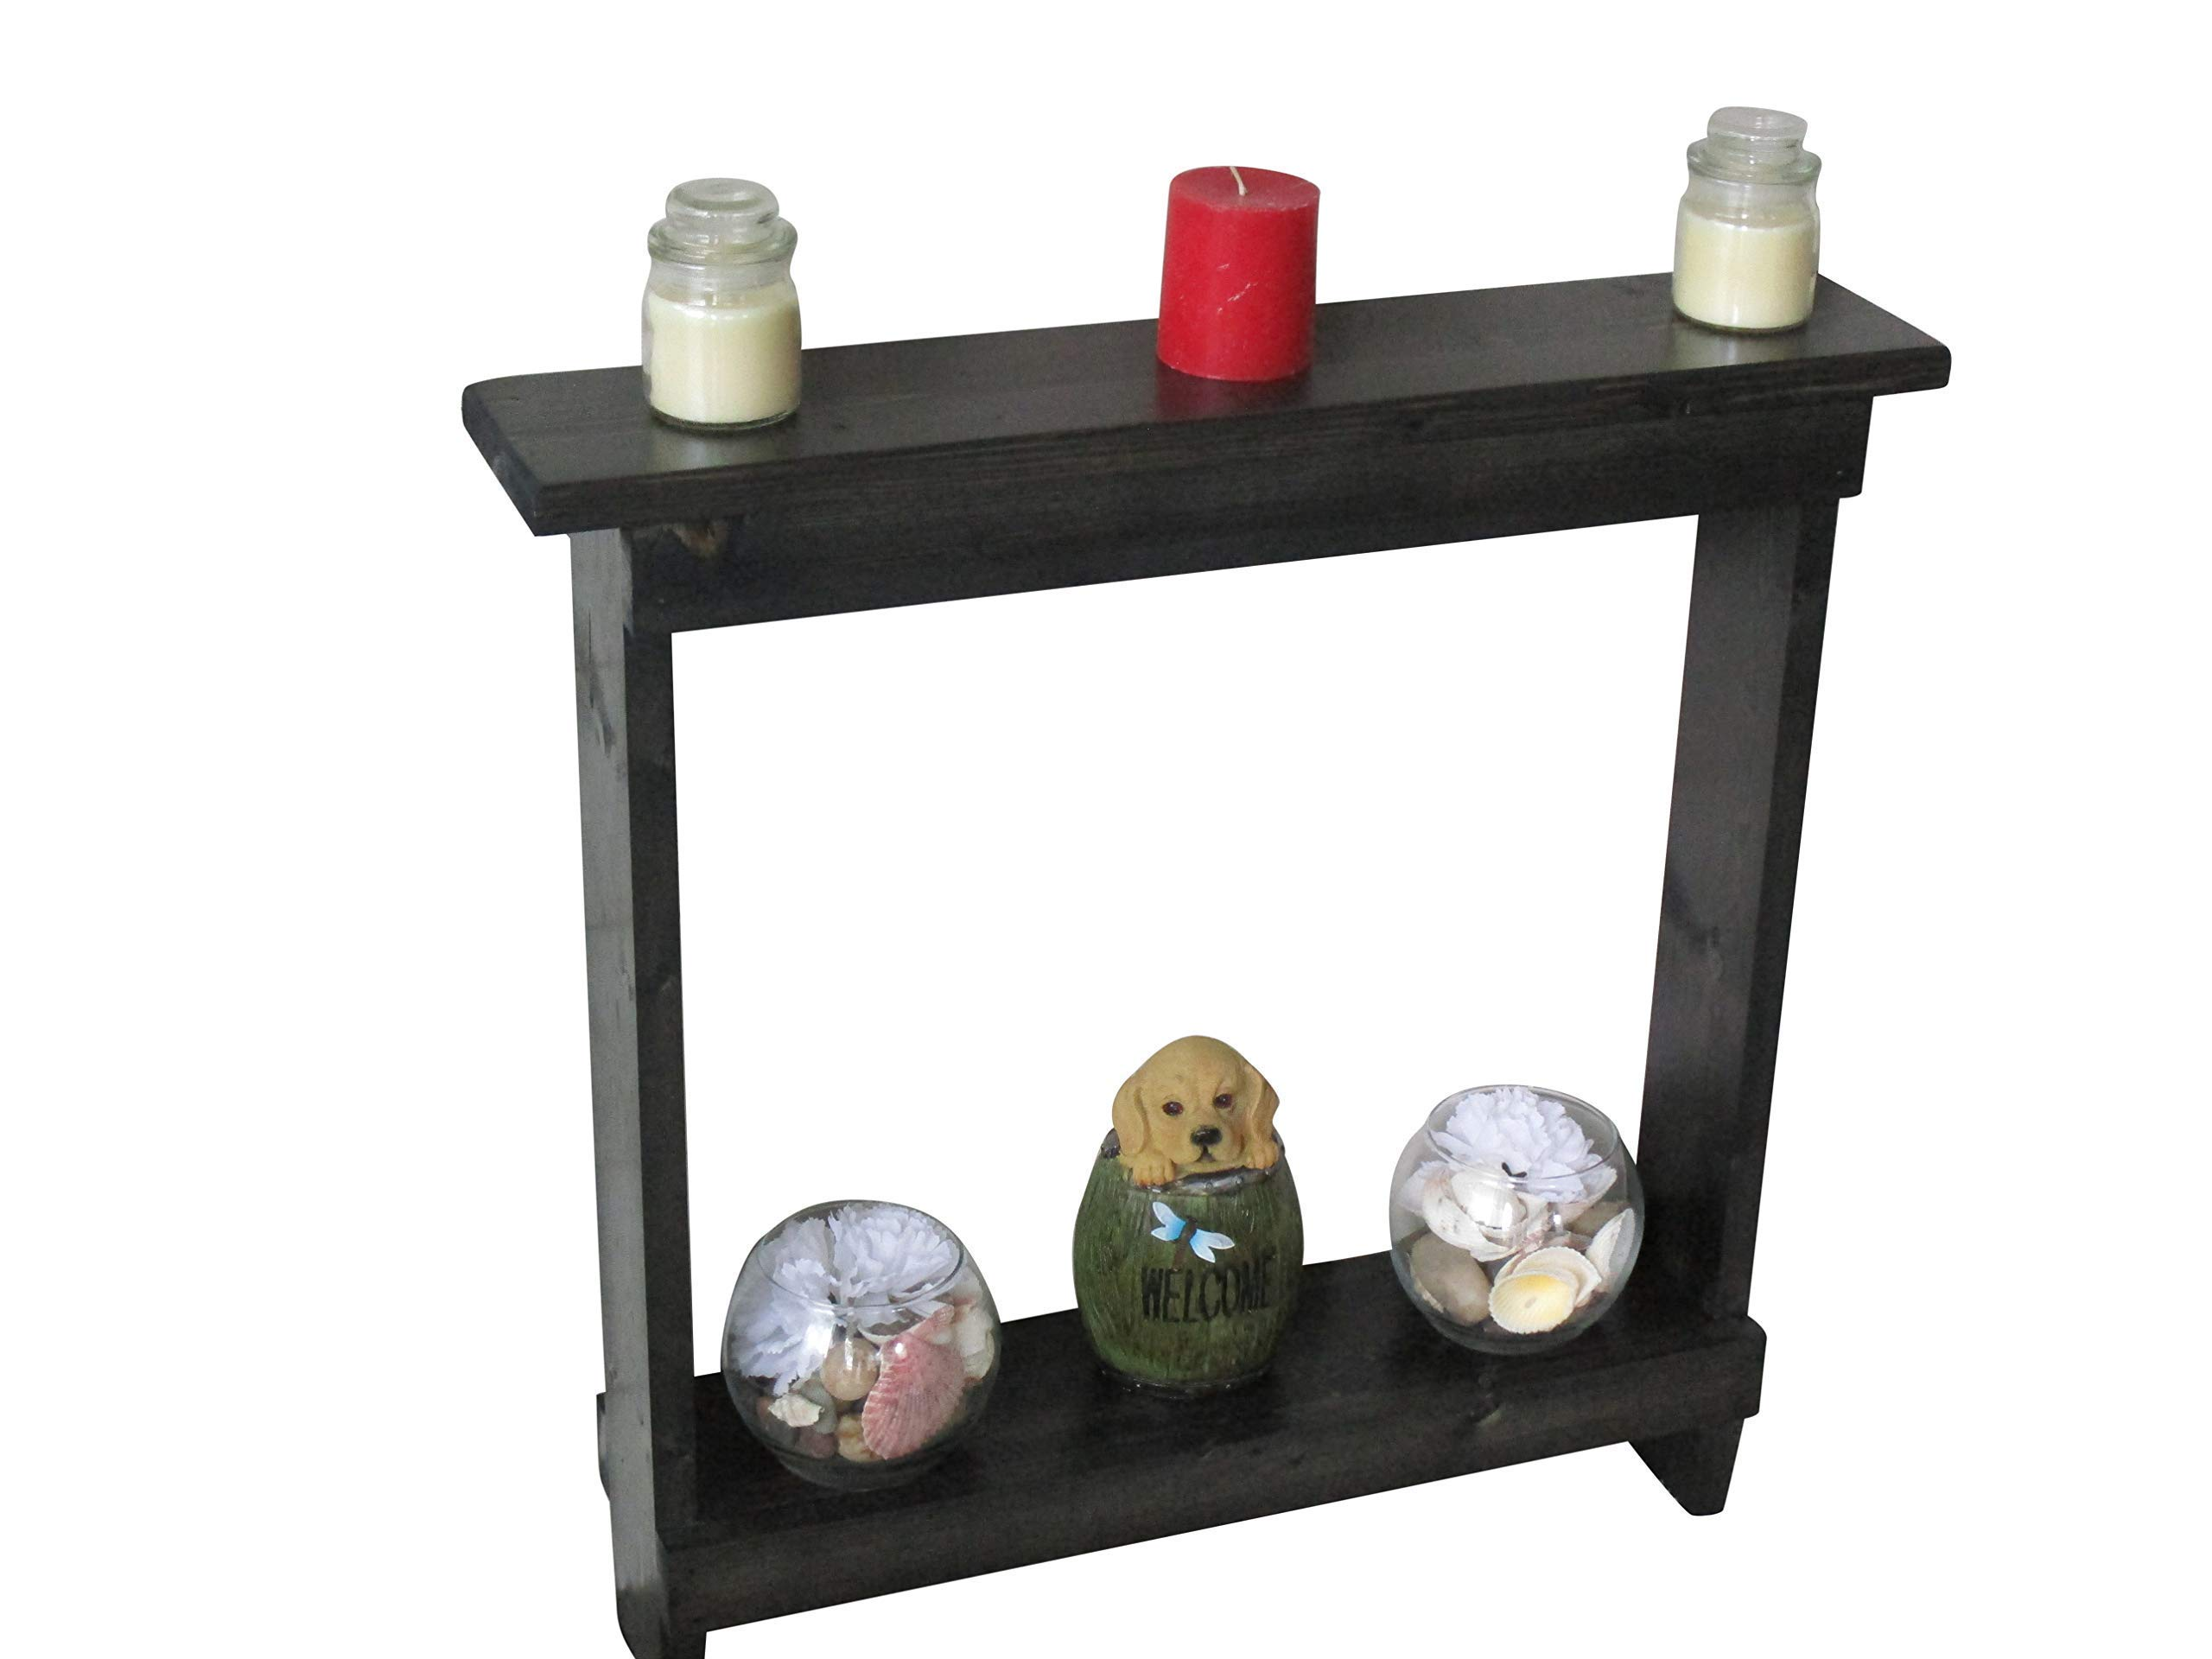 Small accent table Skinny Side Table Narrow End Table,Entryway Table, Rustic Wood Hall Table, Black Stain